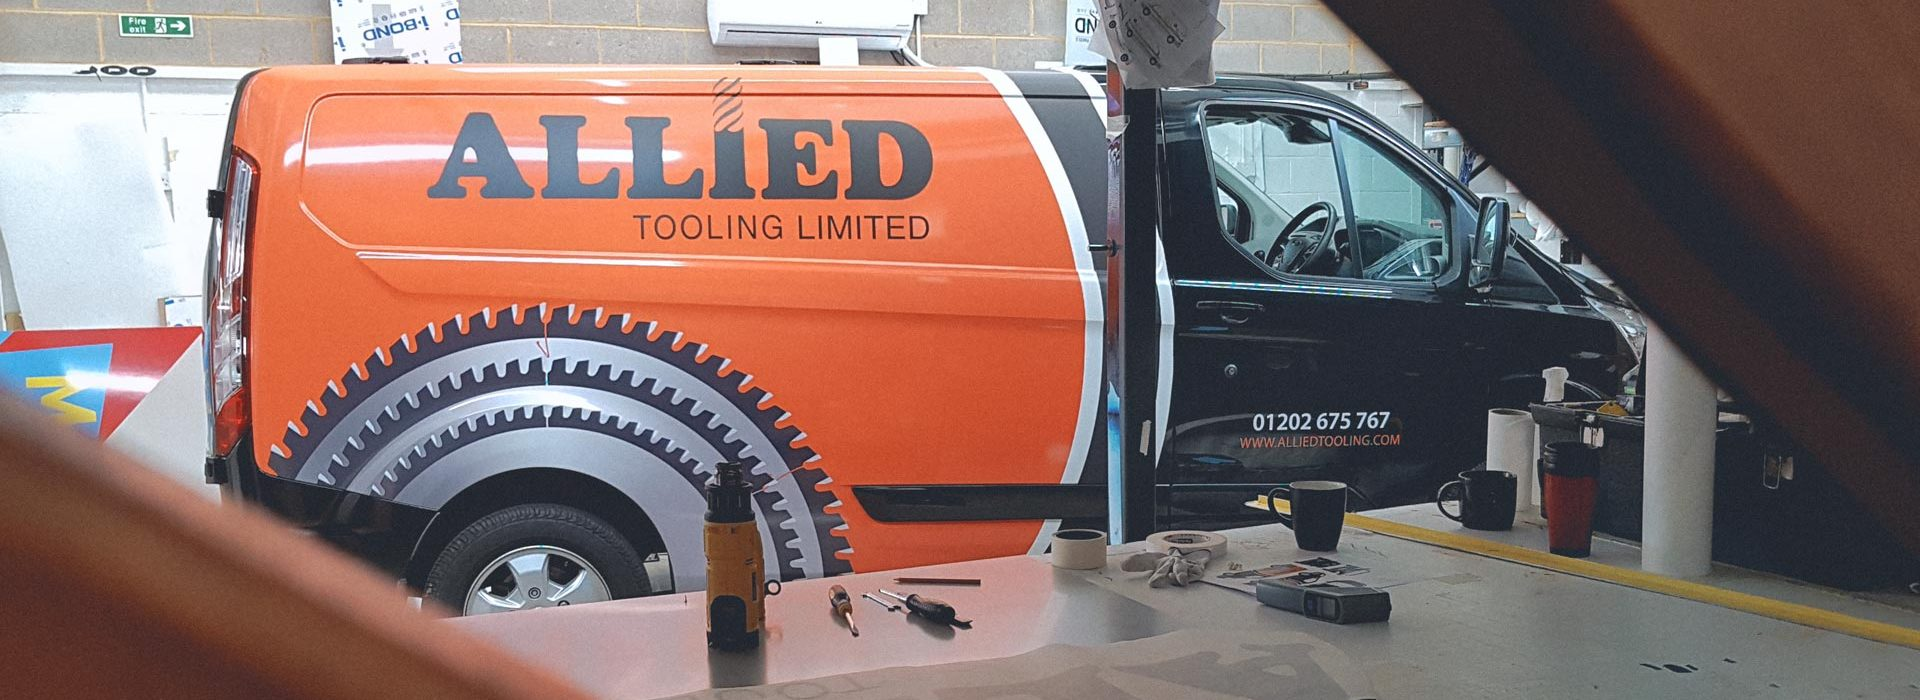 Portfolio - Allied Tooling Ltd Van - Vehicle Wrap